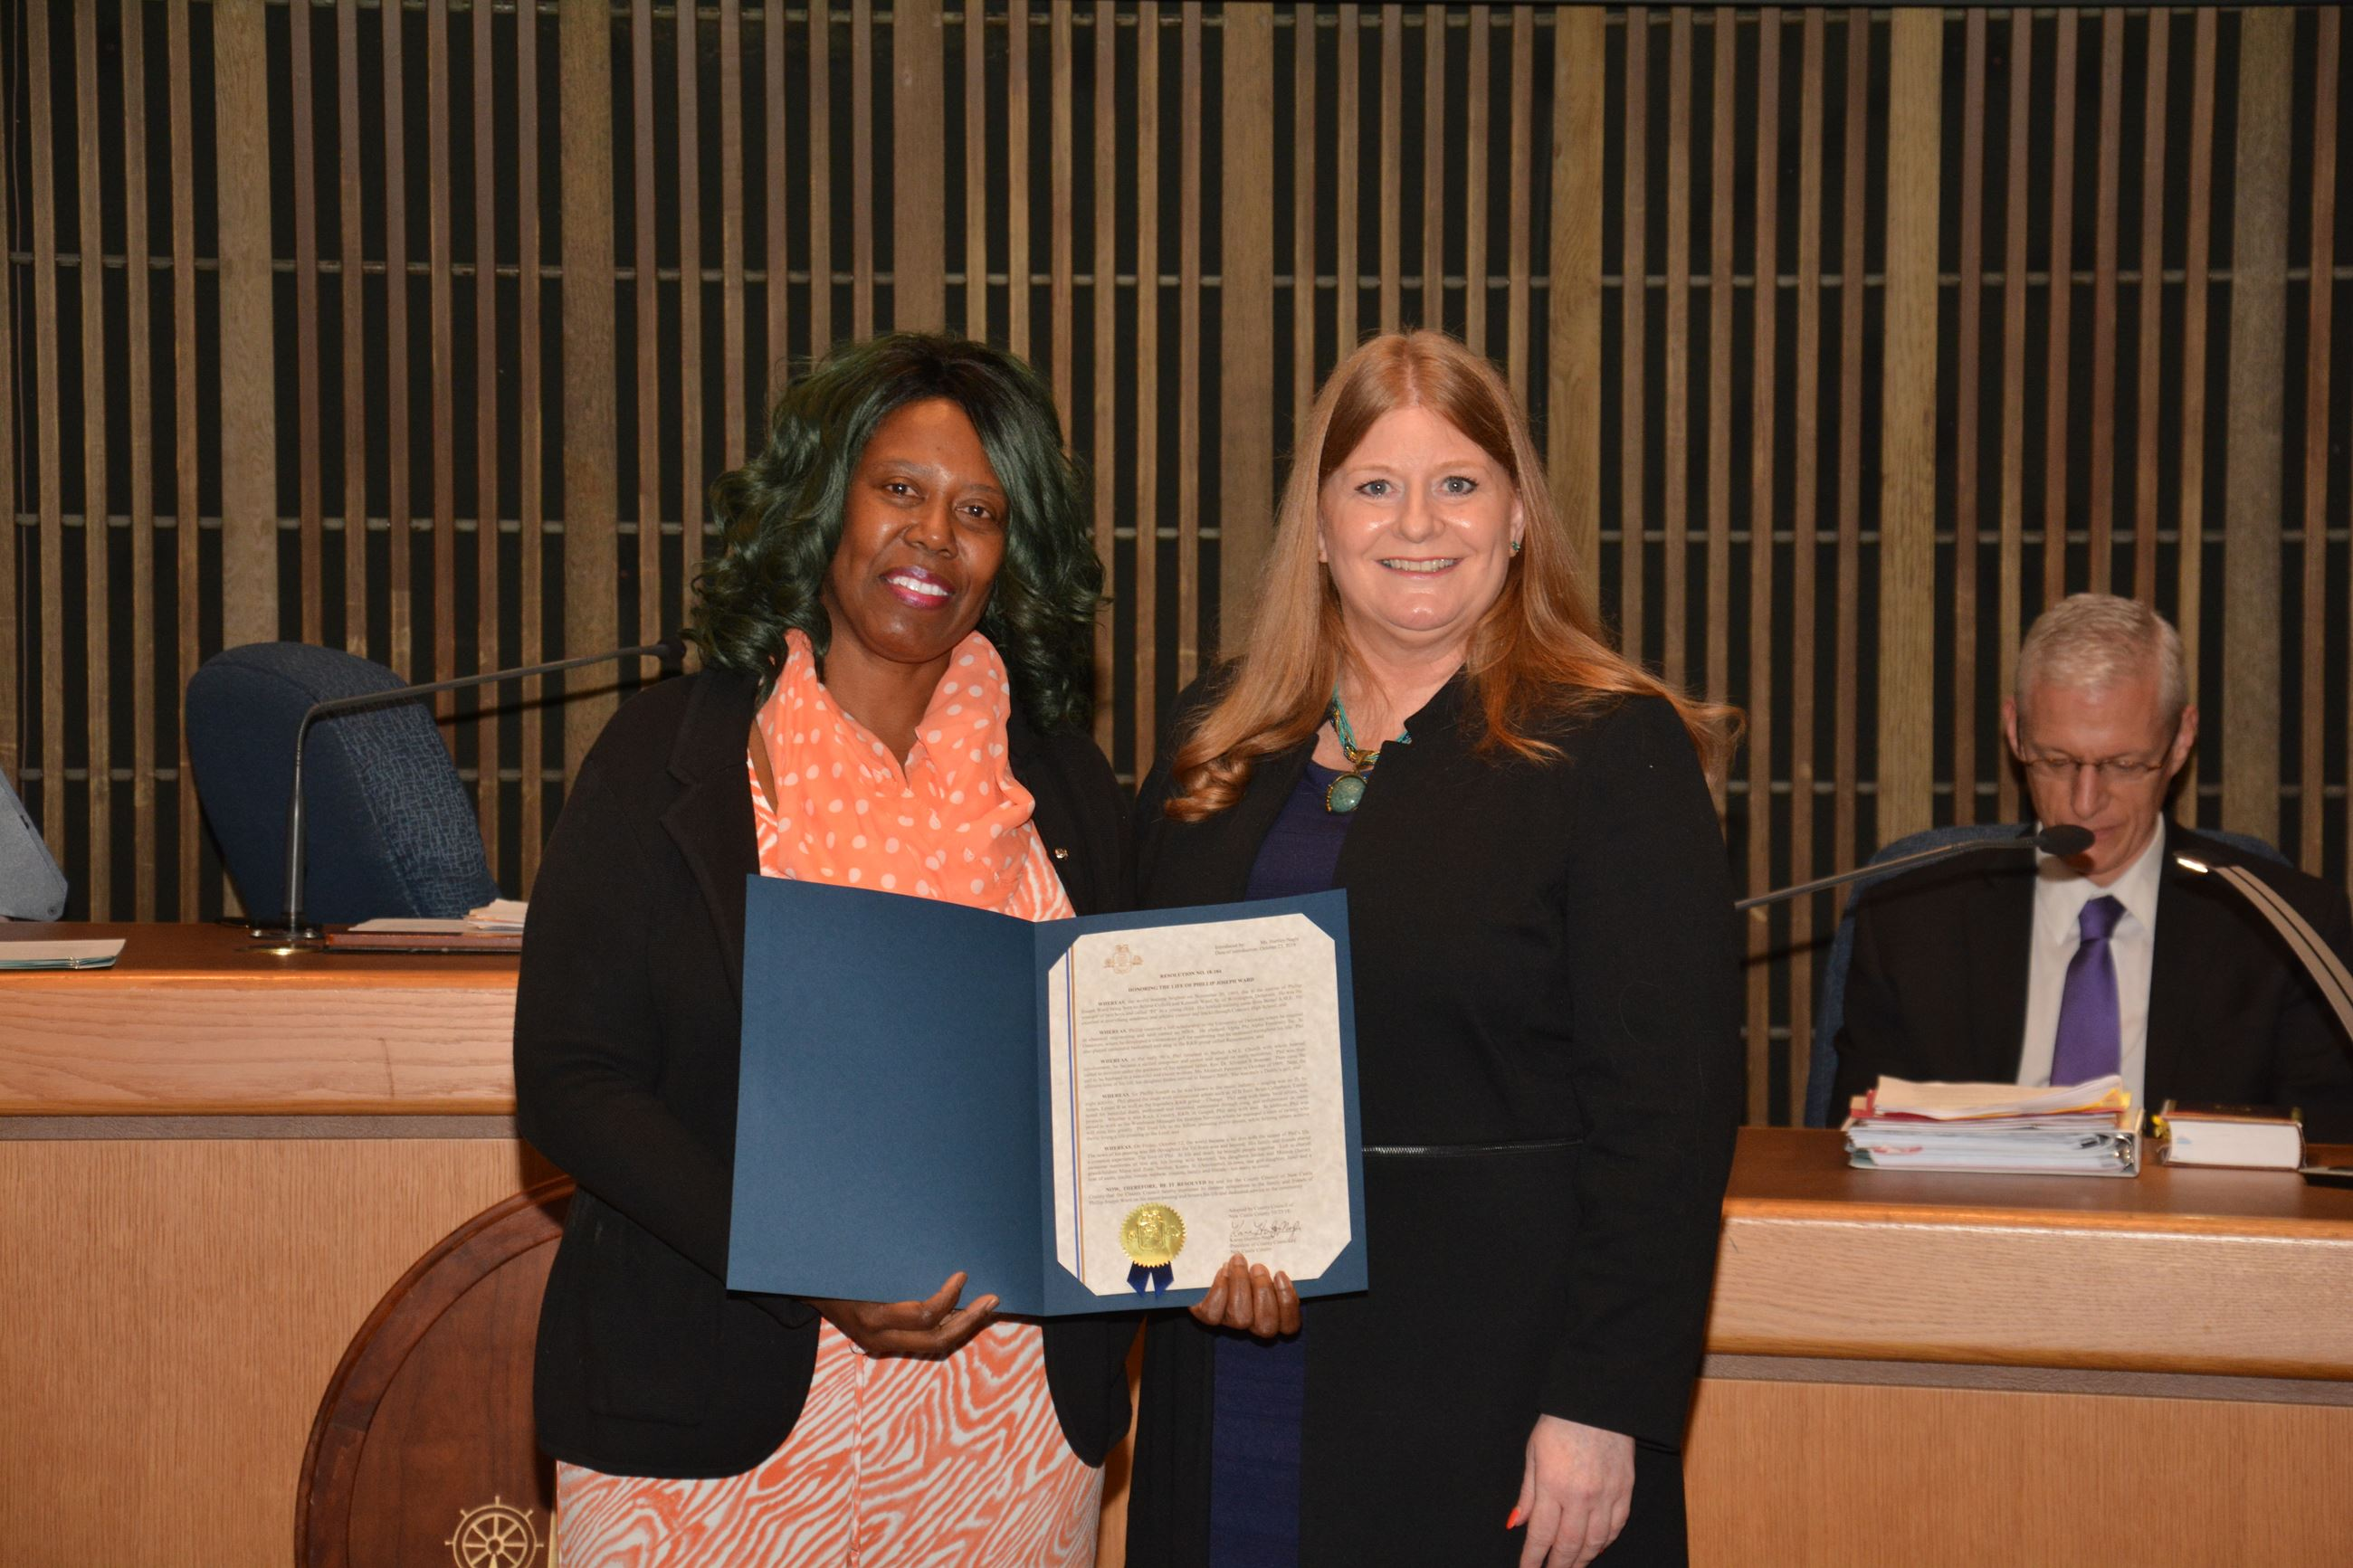 Council President Karen Hartley-Nagle presented a Council Resolution honoring the life of Phillip Jo